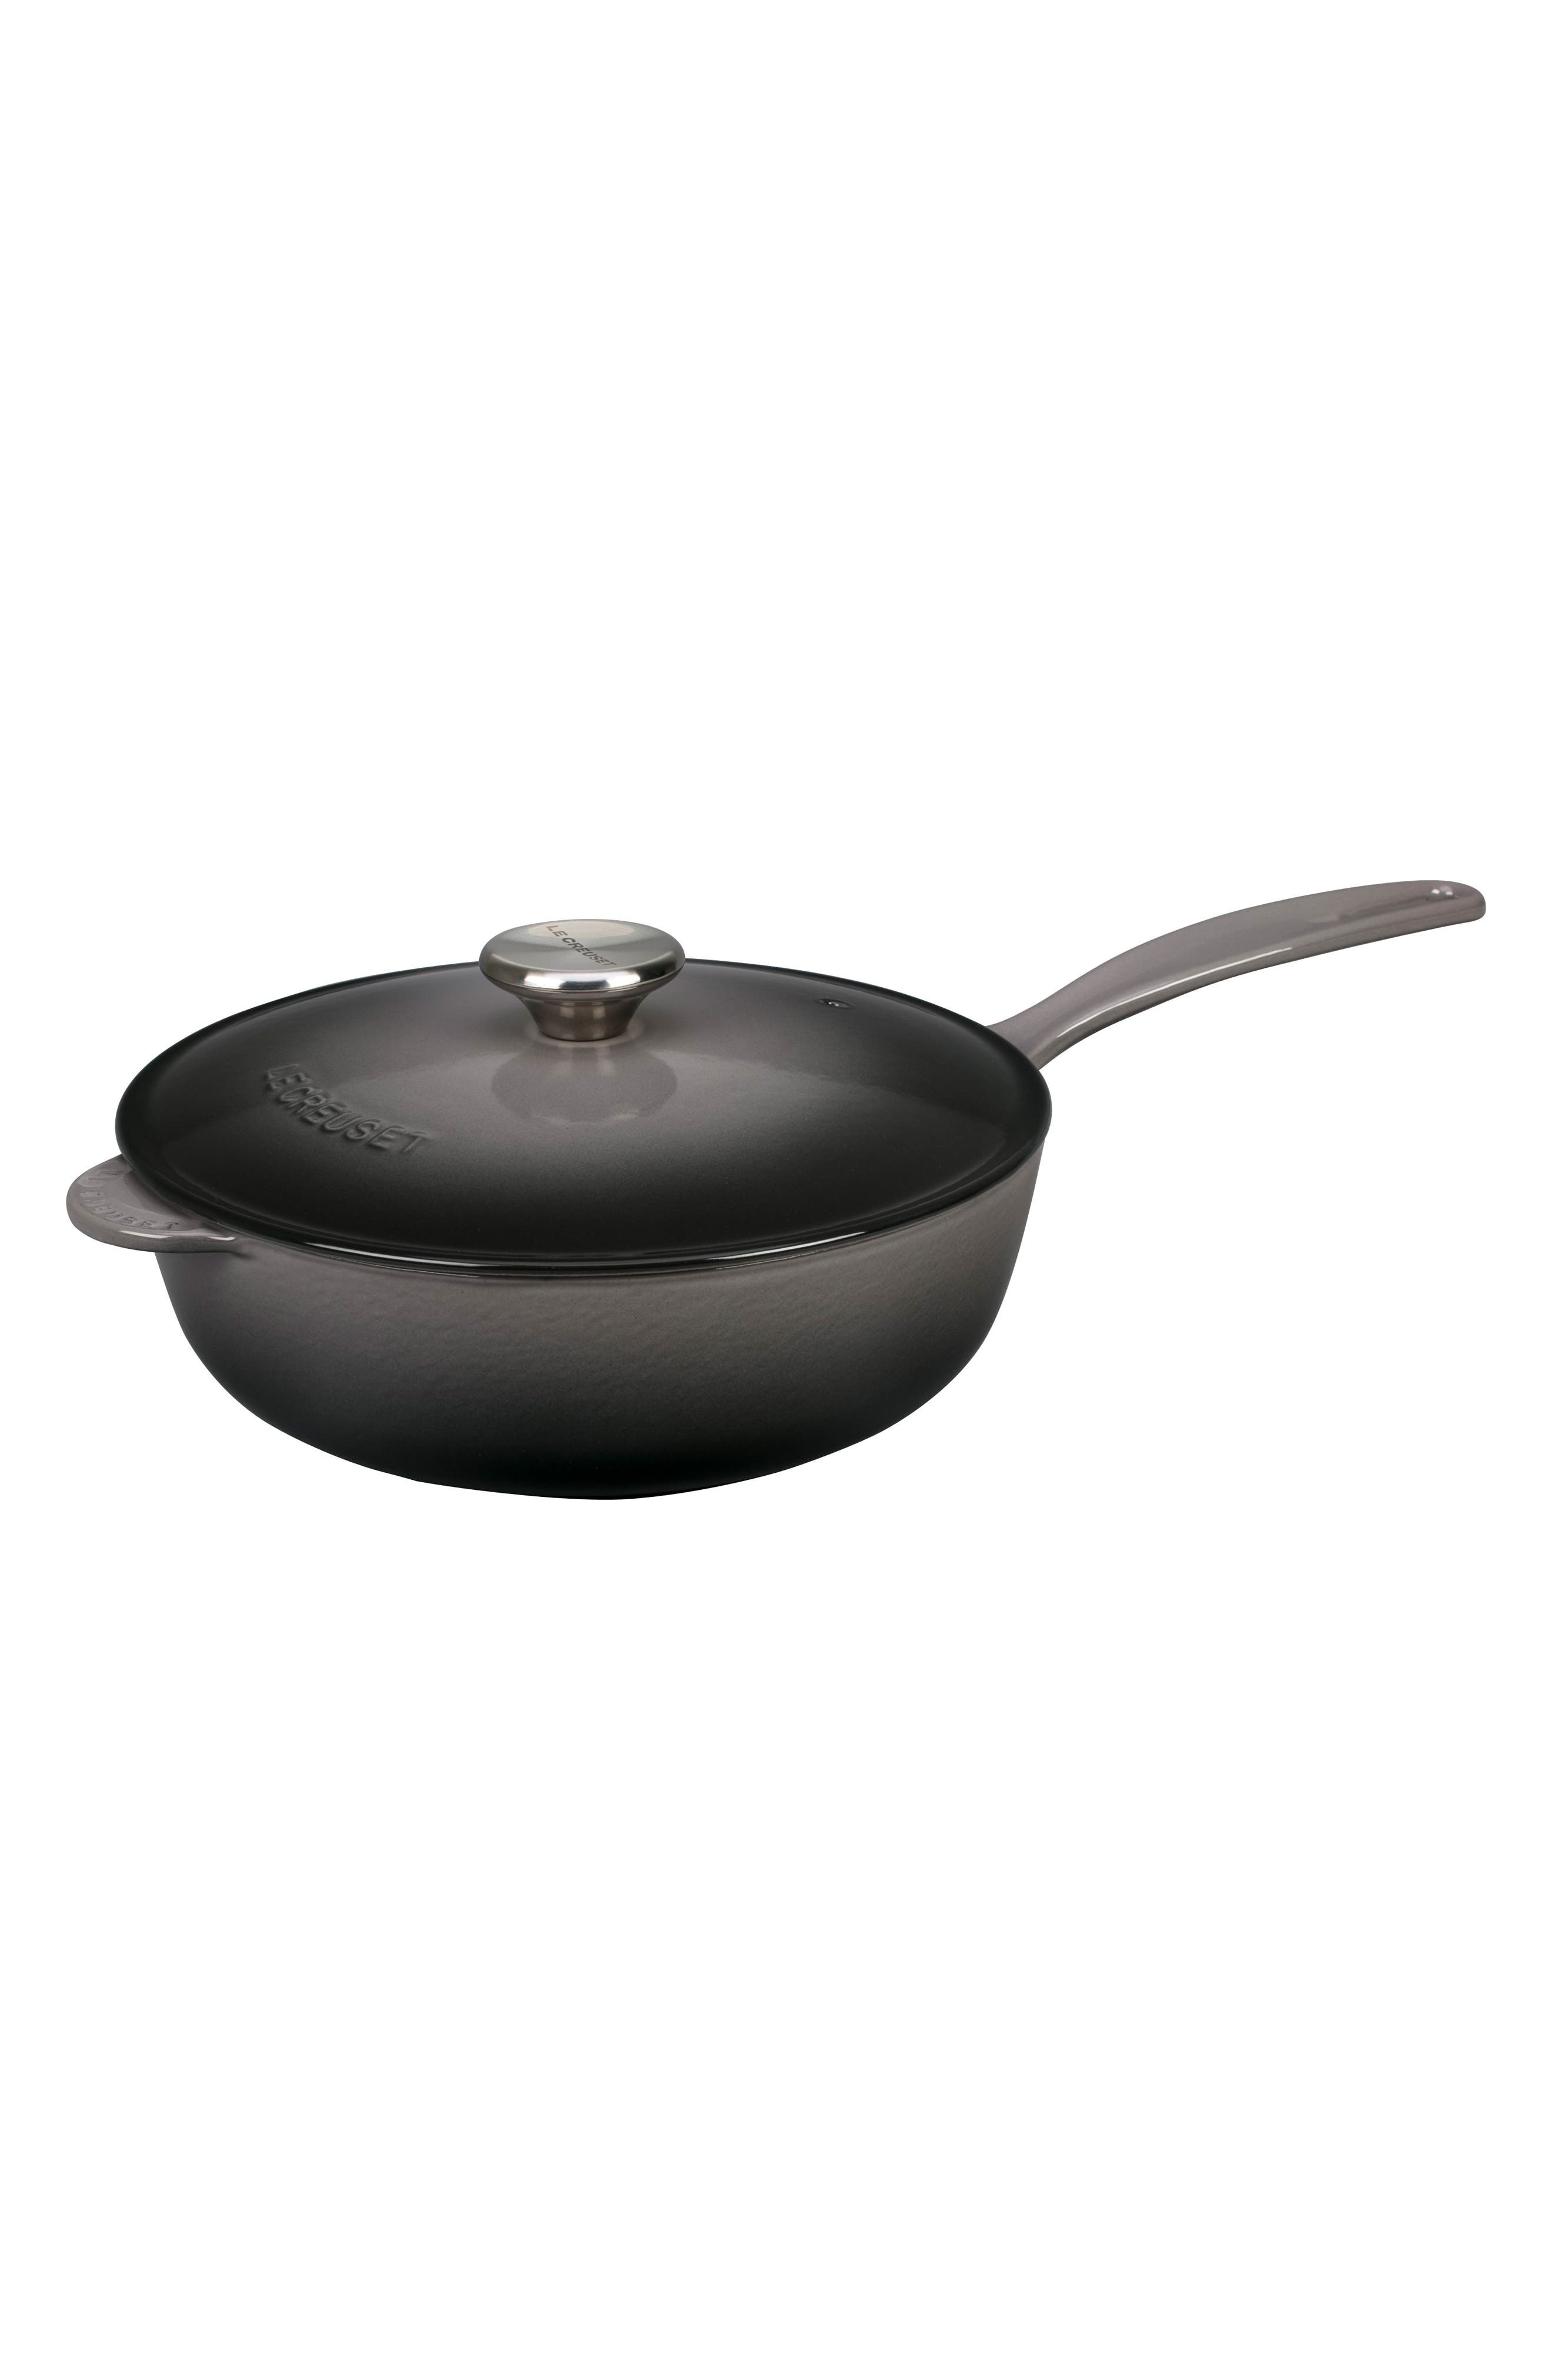 Le Creuset 3-Quart Enameled Cast Iron Saucier